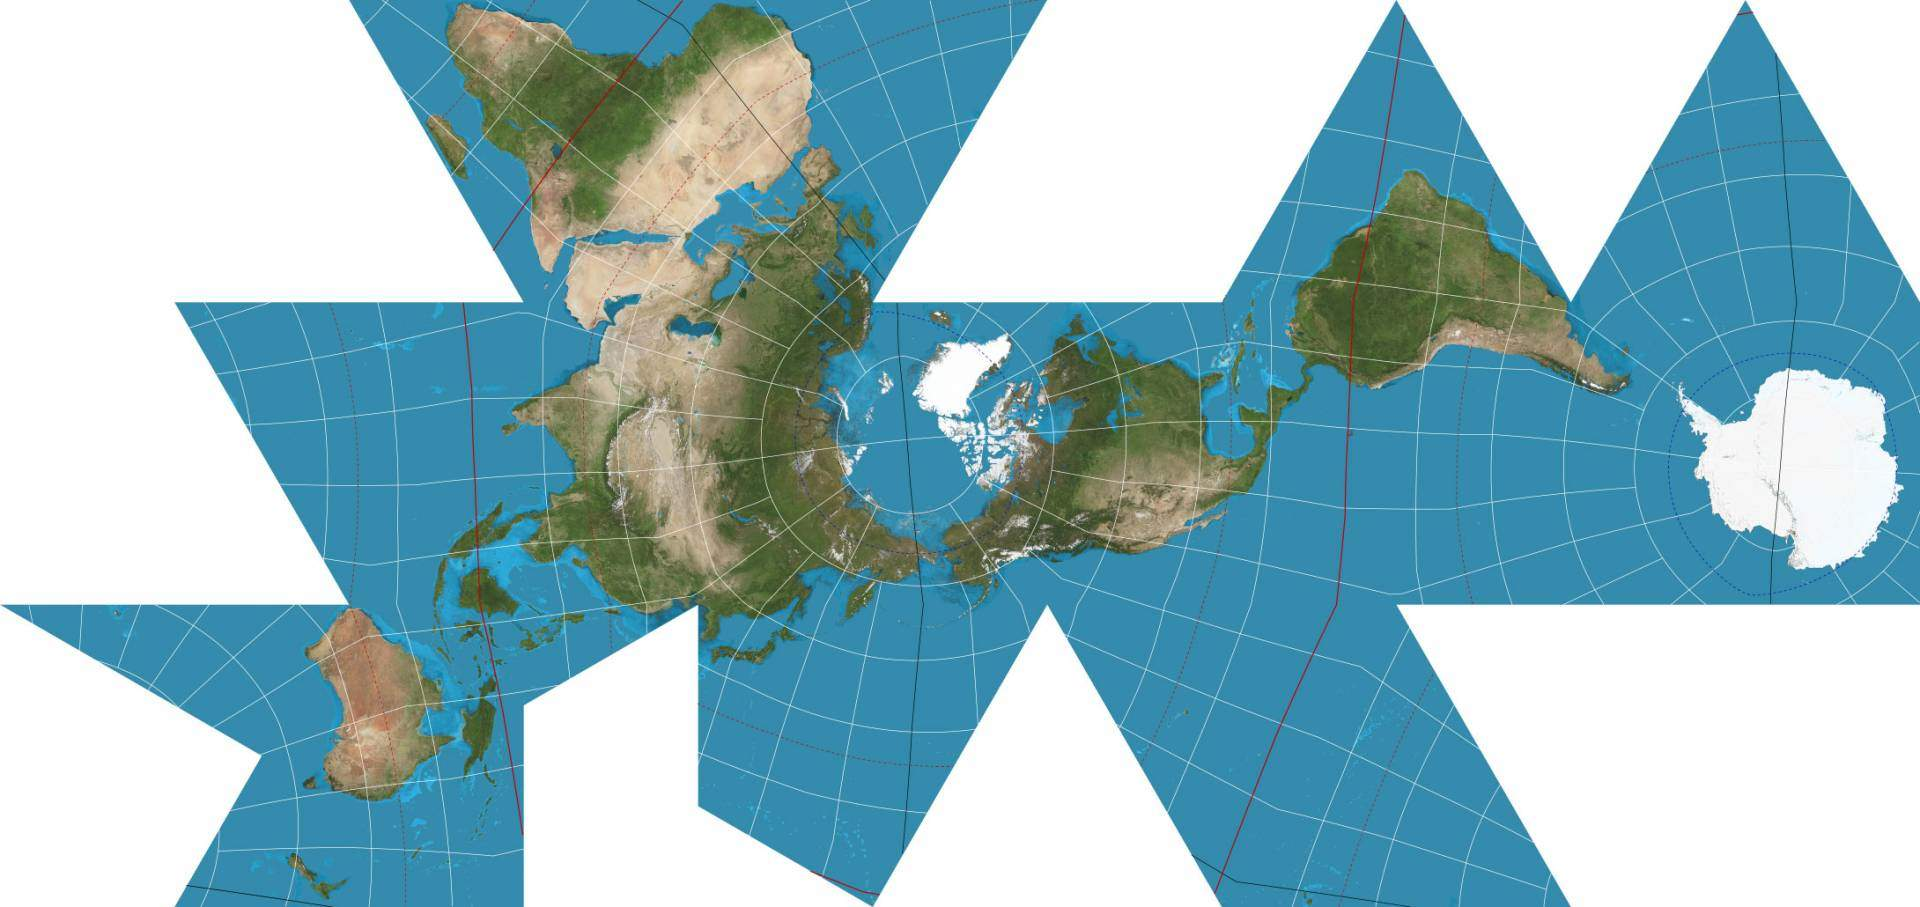 Dymaxion projection 0